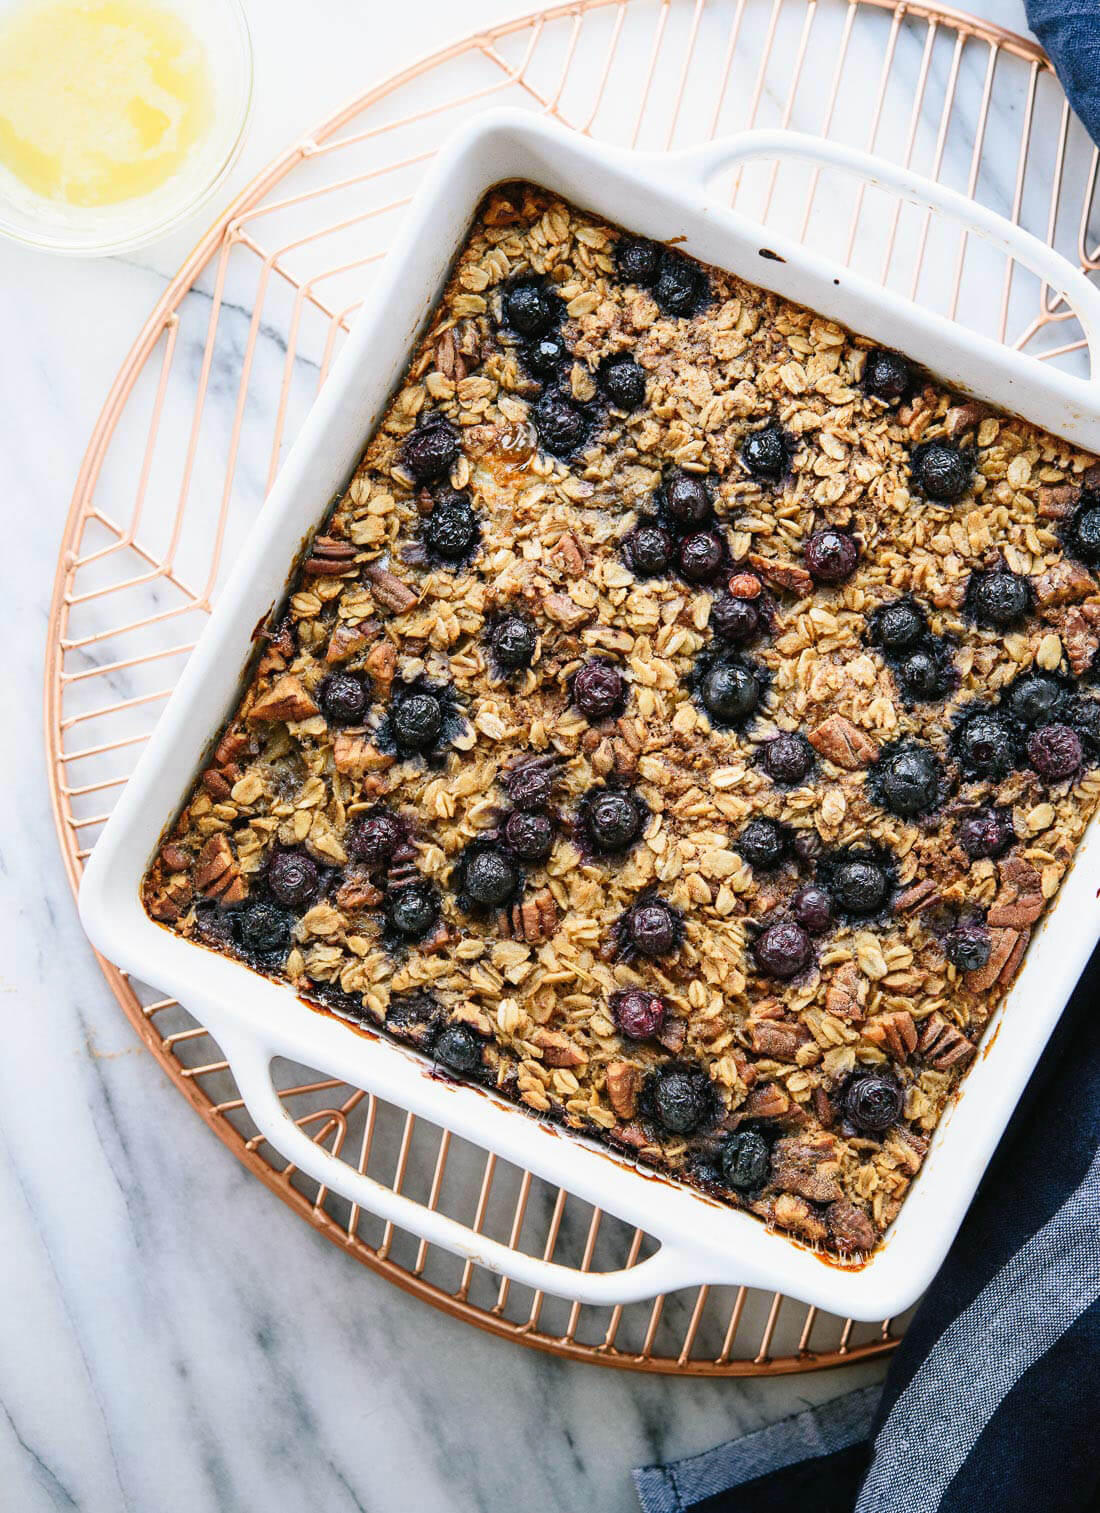 Baked Oatmeal Recipe With Blueberries - Cookie And Kate